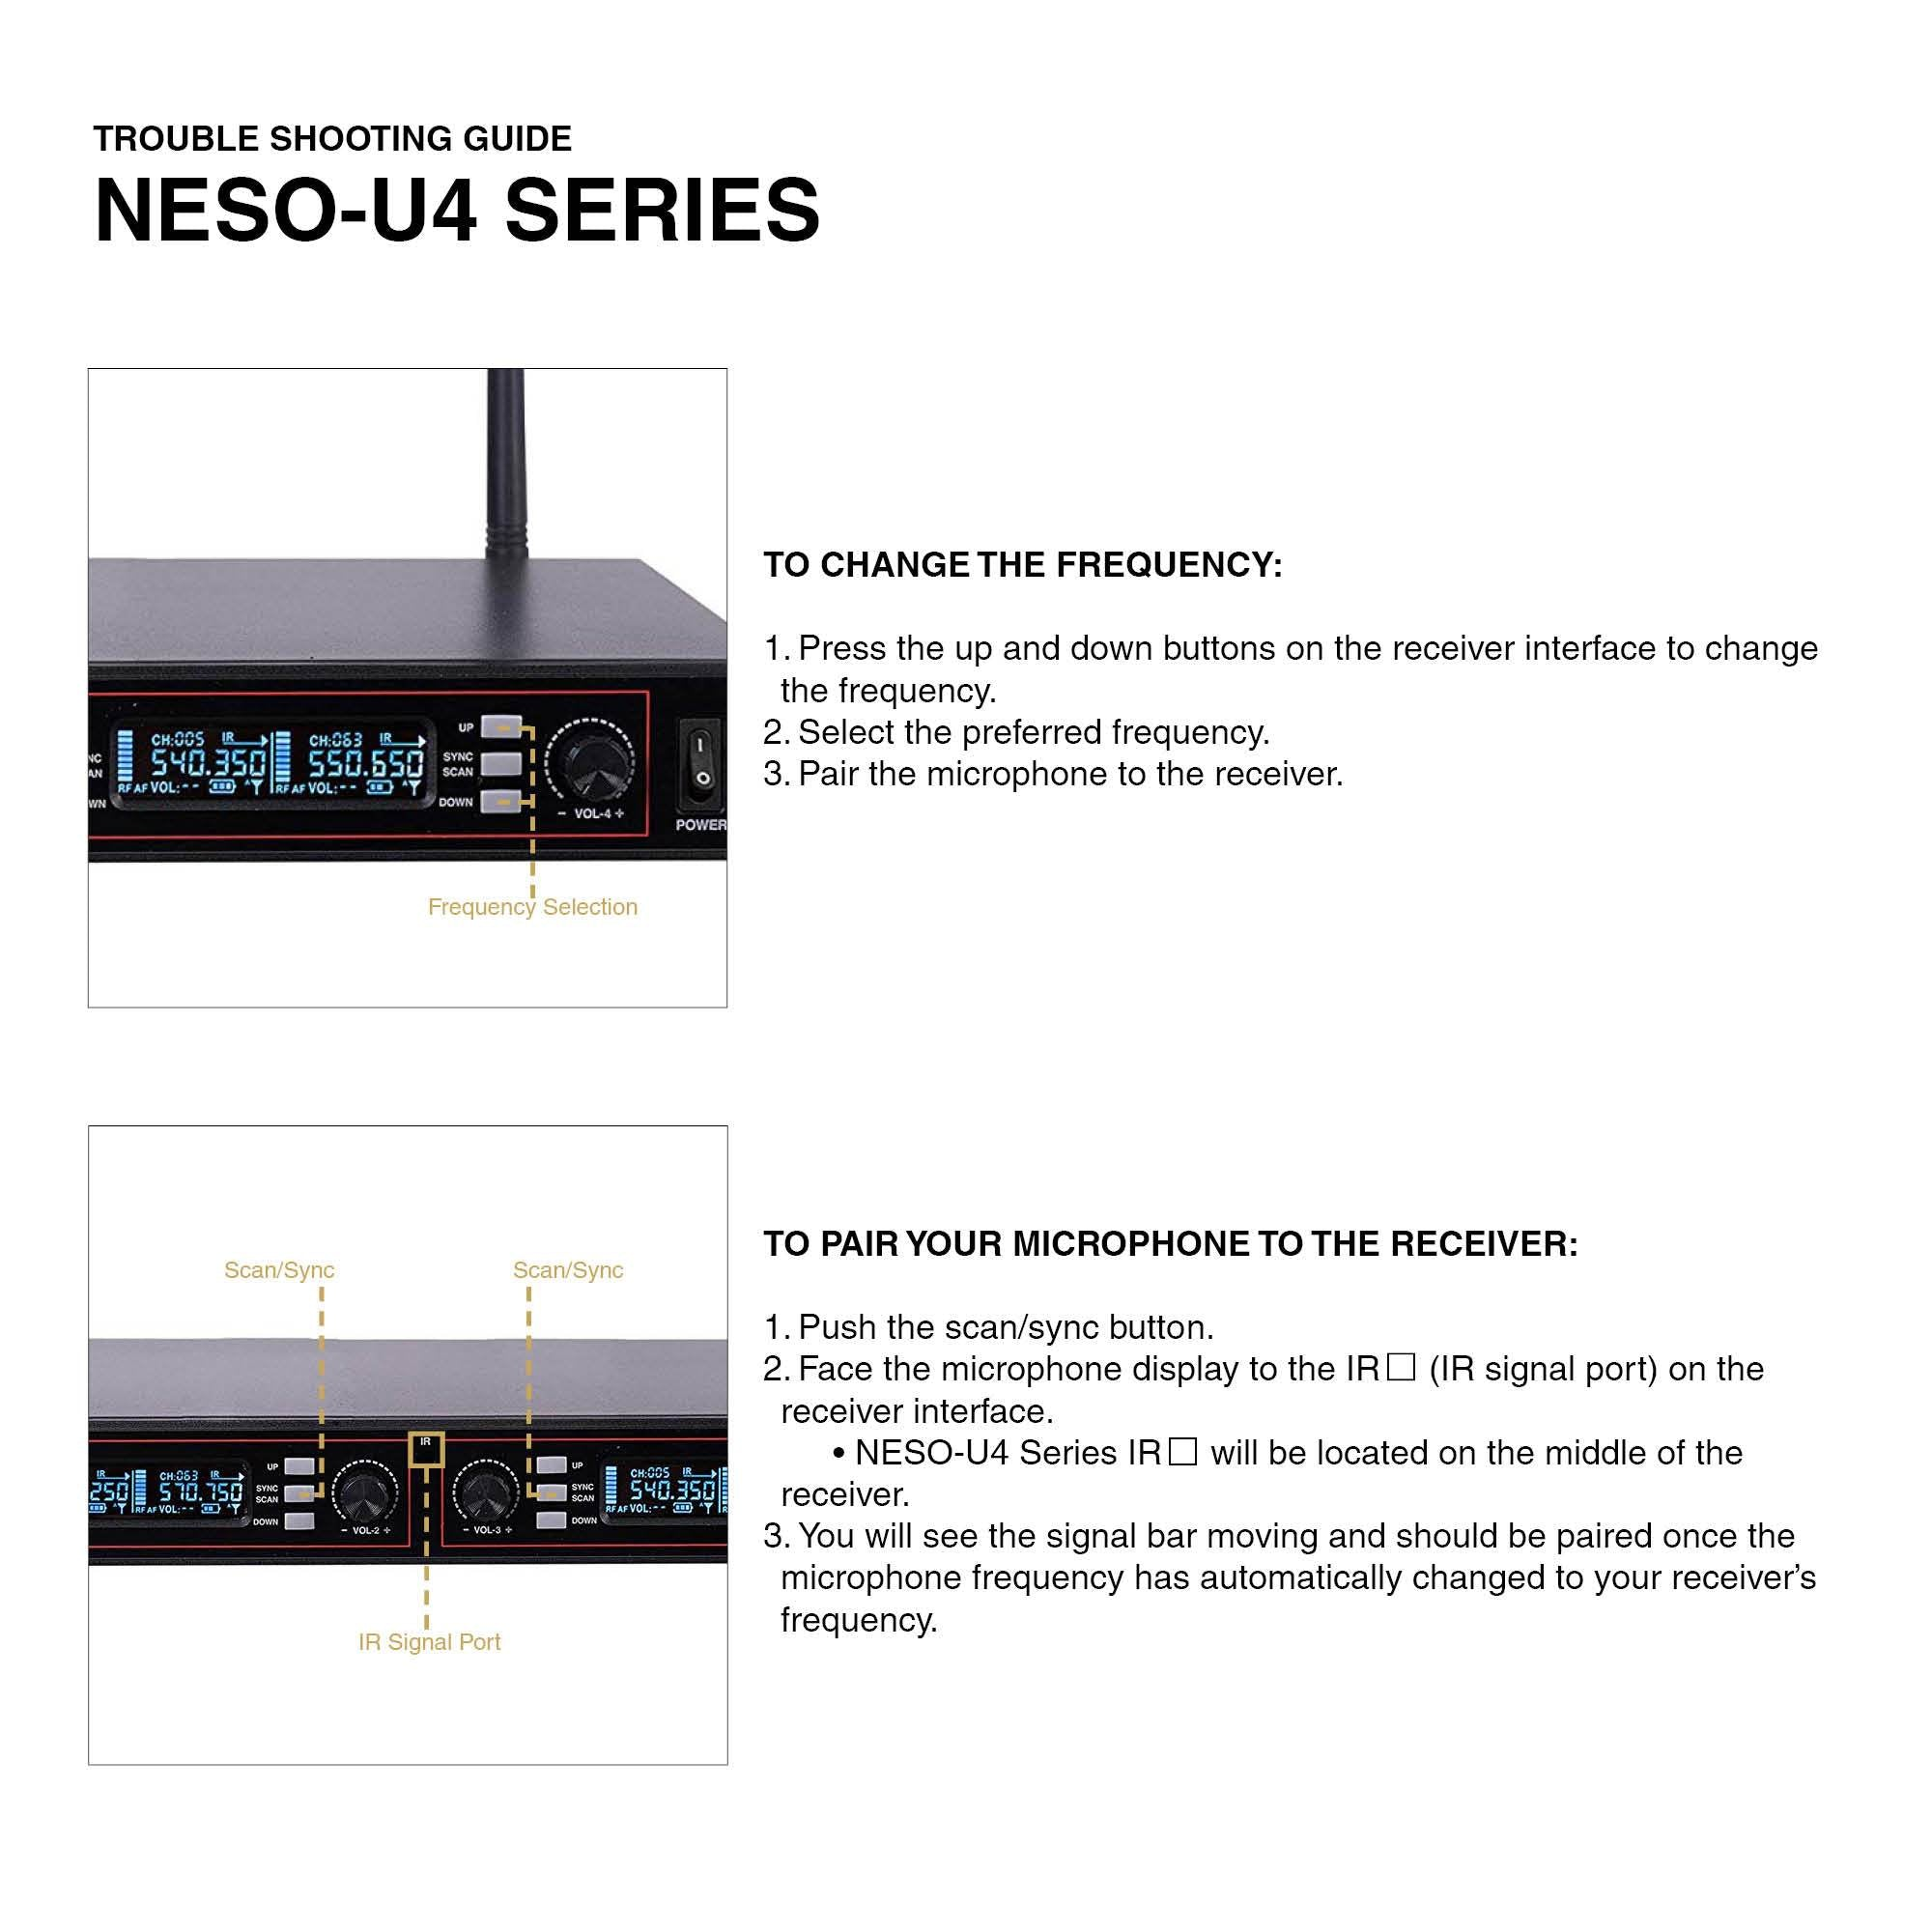 NESO-U4 SERIES NESO-U4HH NESO-U4HL NESO-U4LL Troubleshooting Guide How to Connect Sync Microphone to Receiver How to Change the Frequency